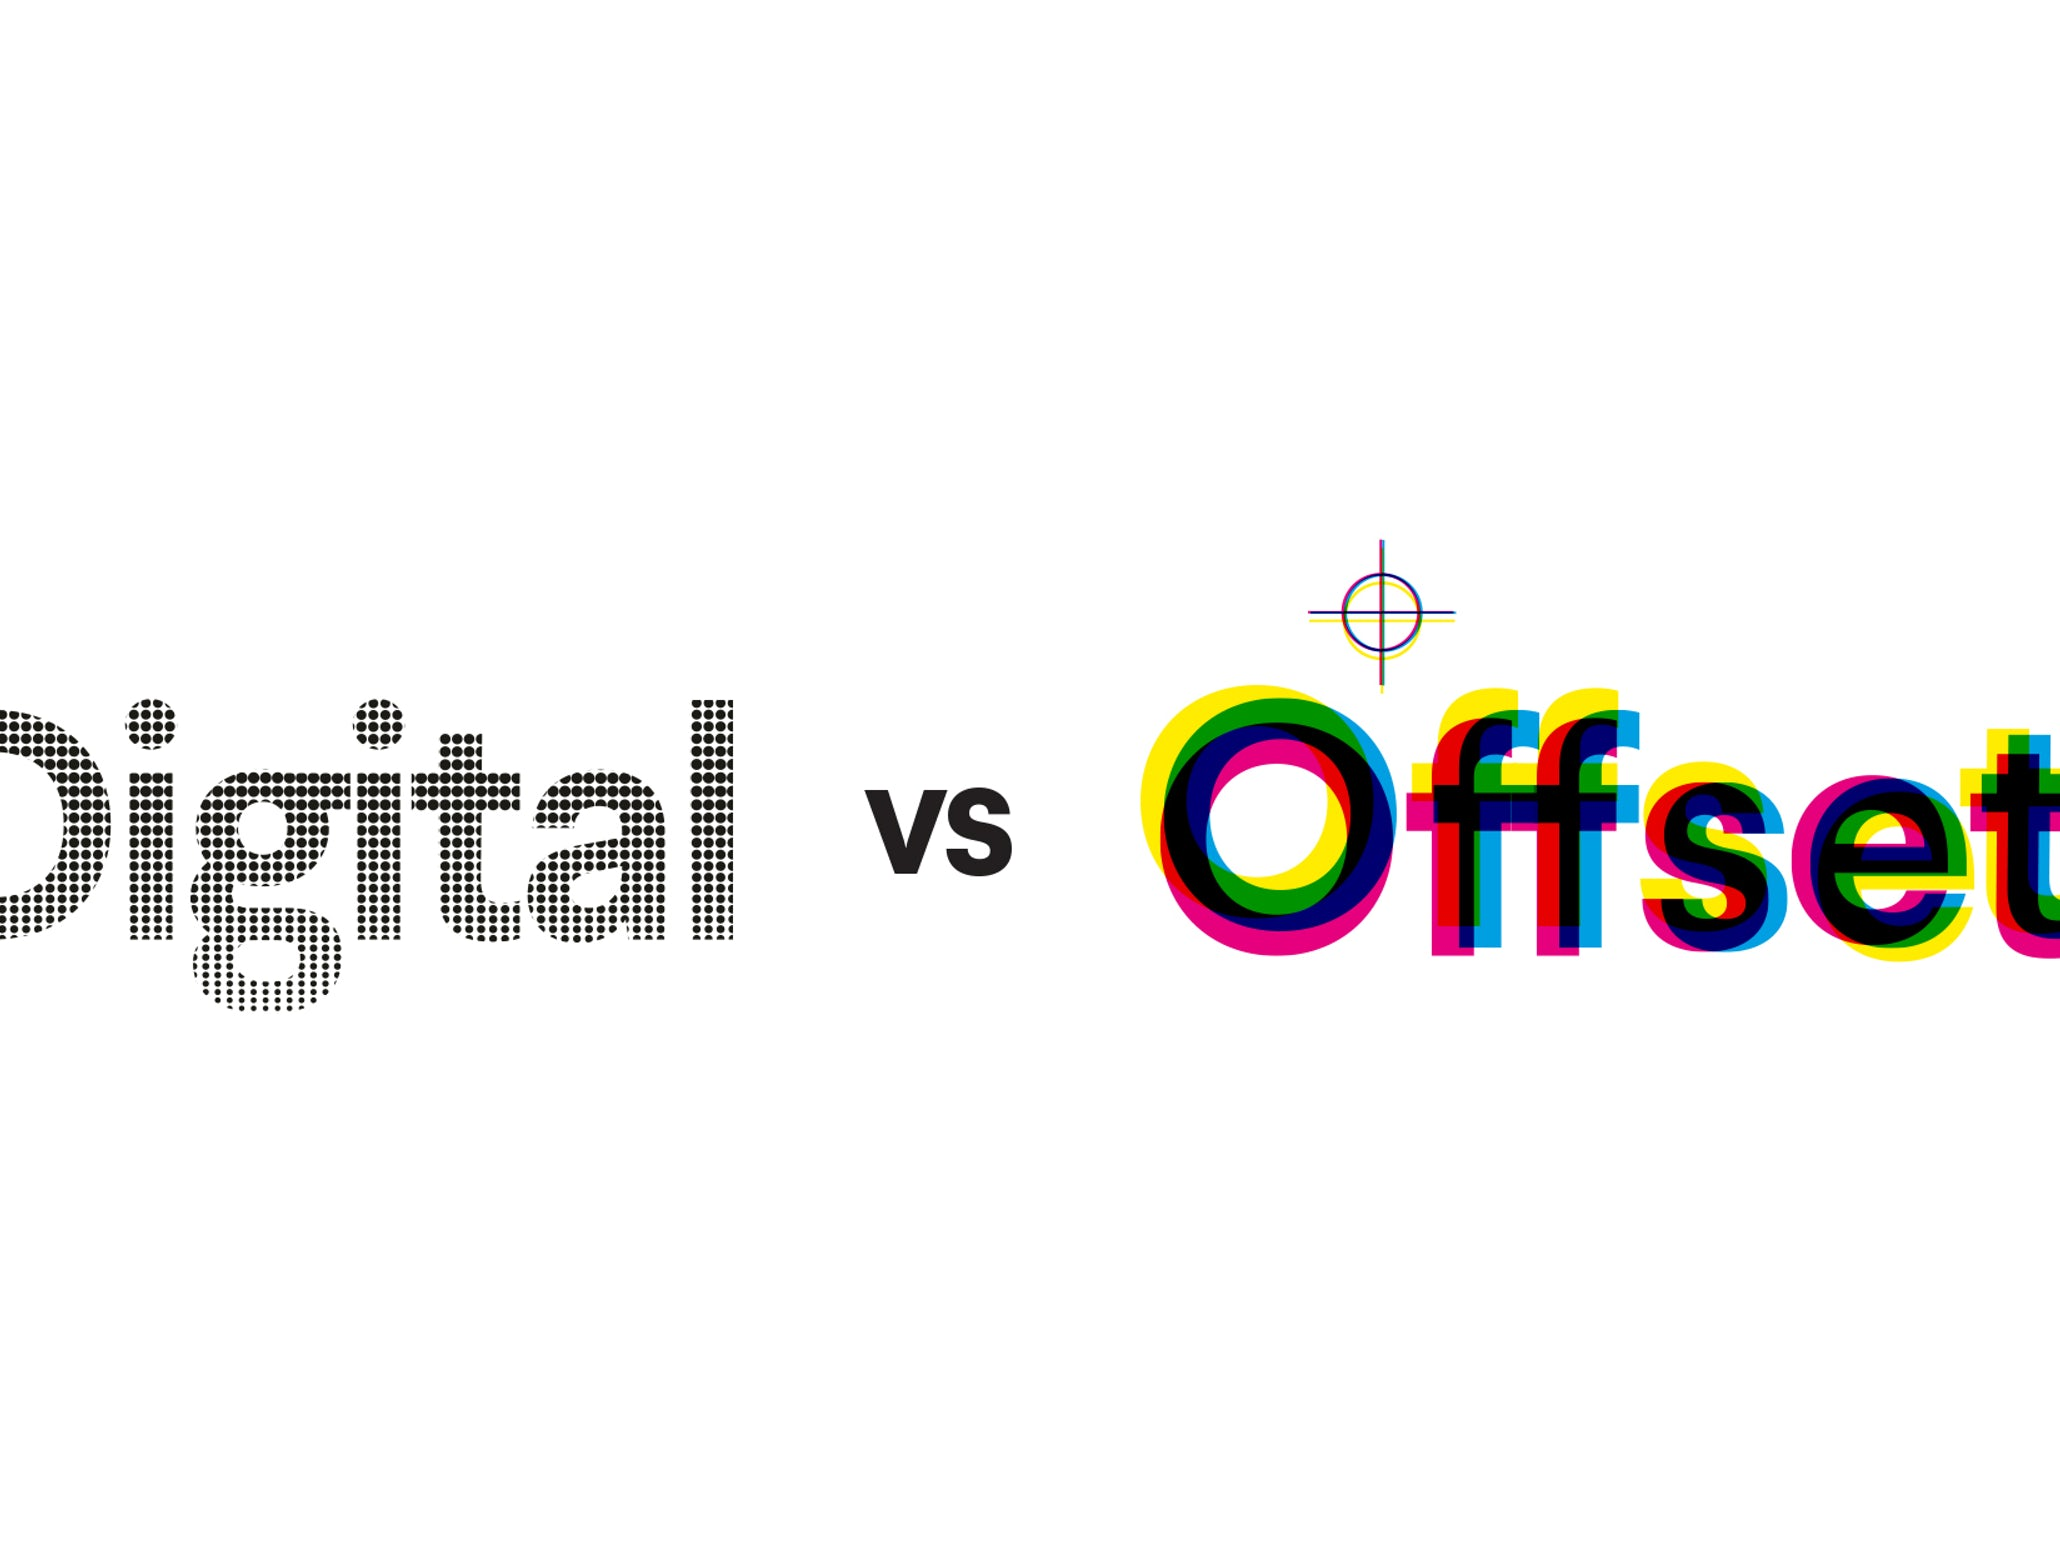 Digital printing vs. Offset